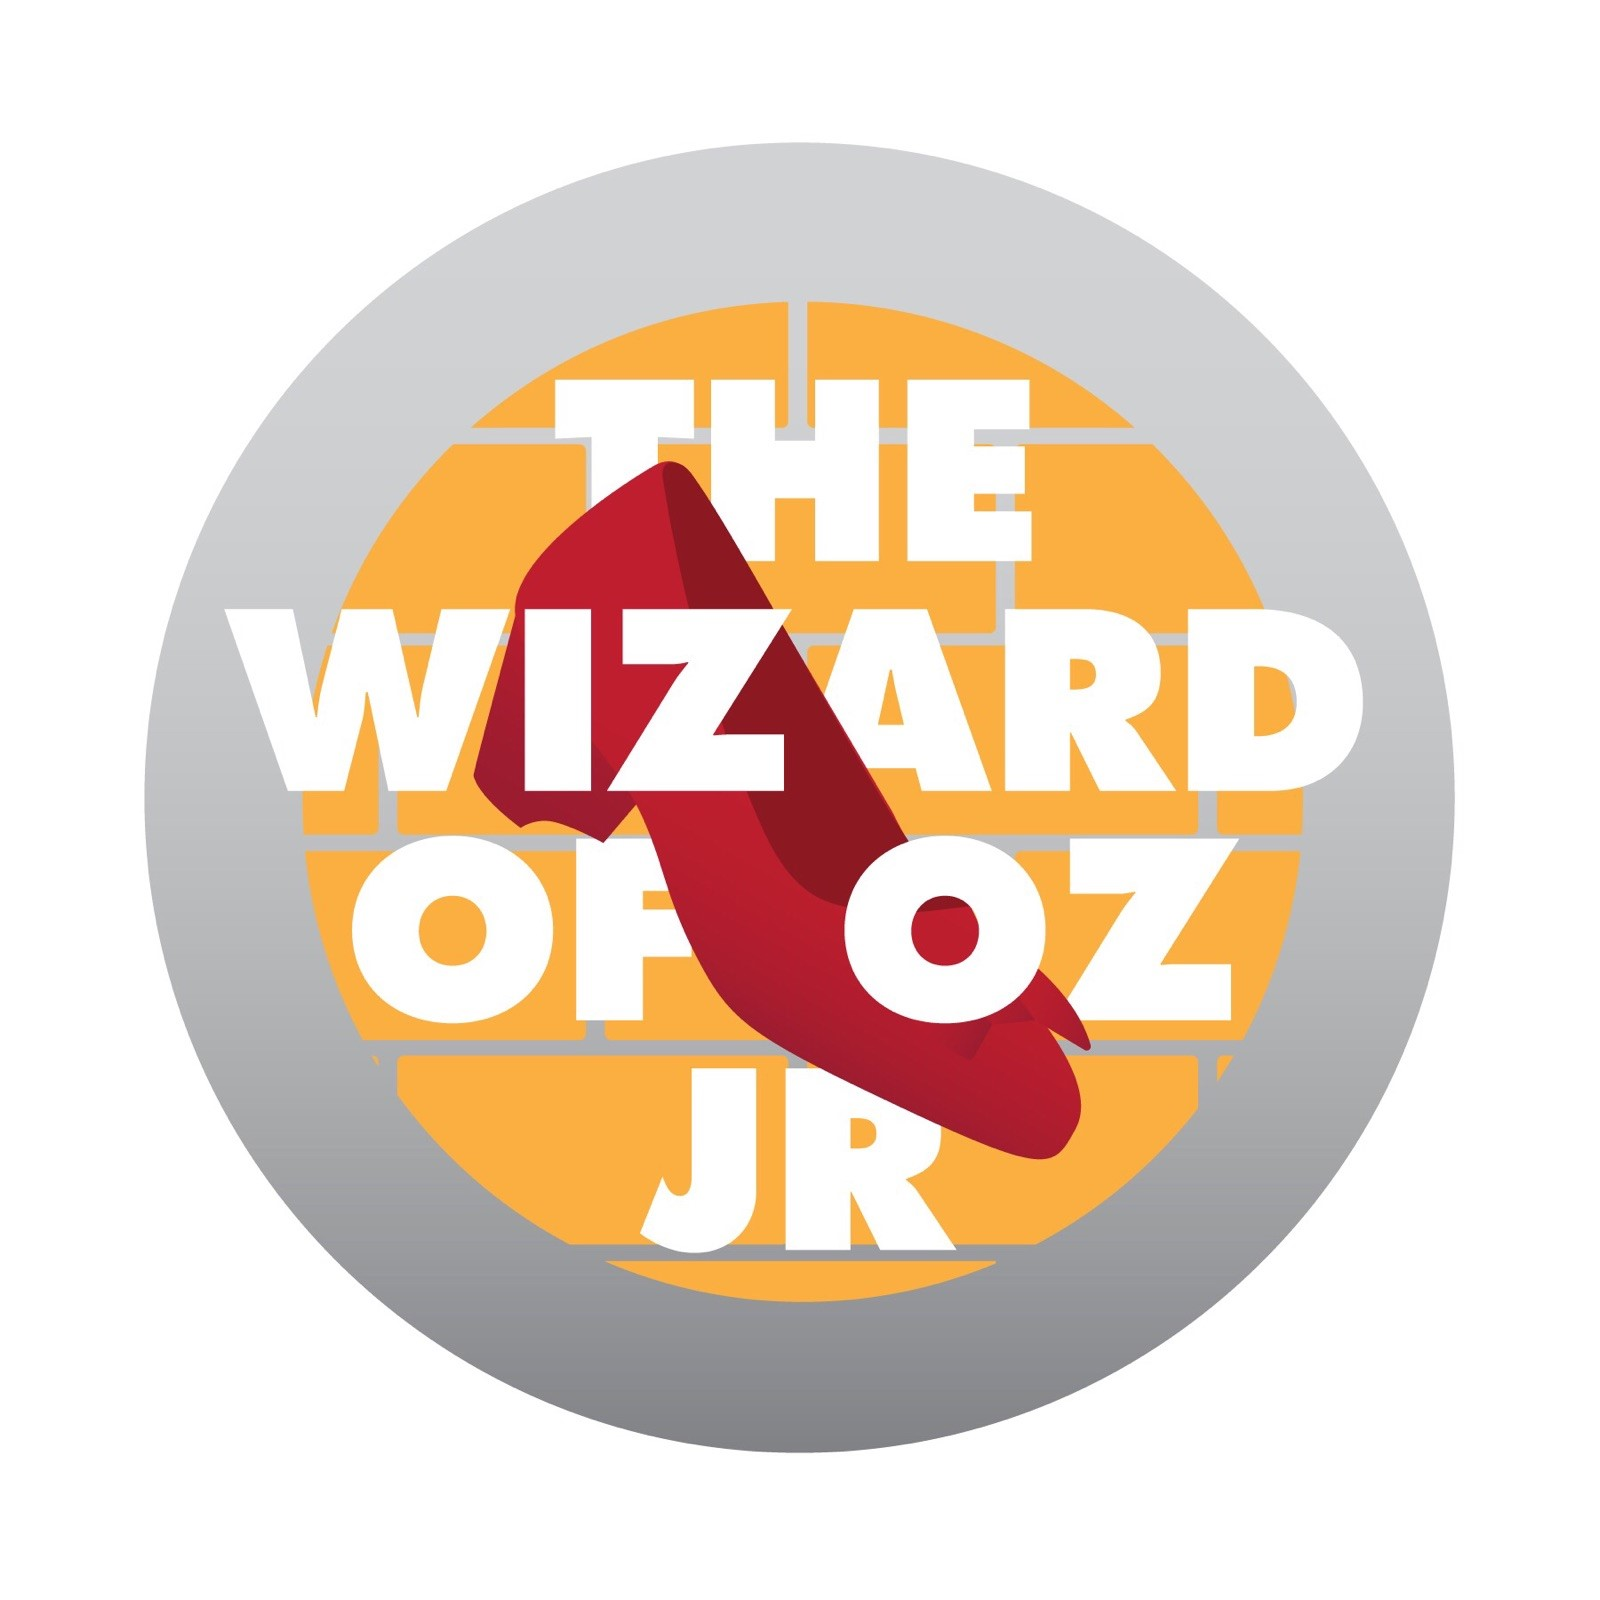 Wizard of Oz Junior